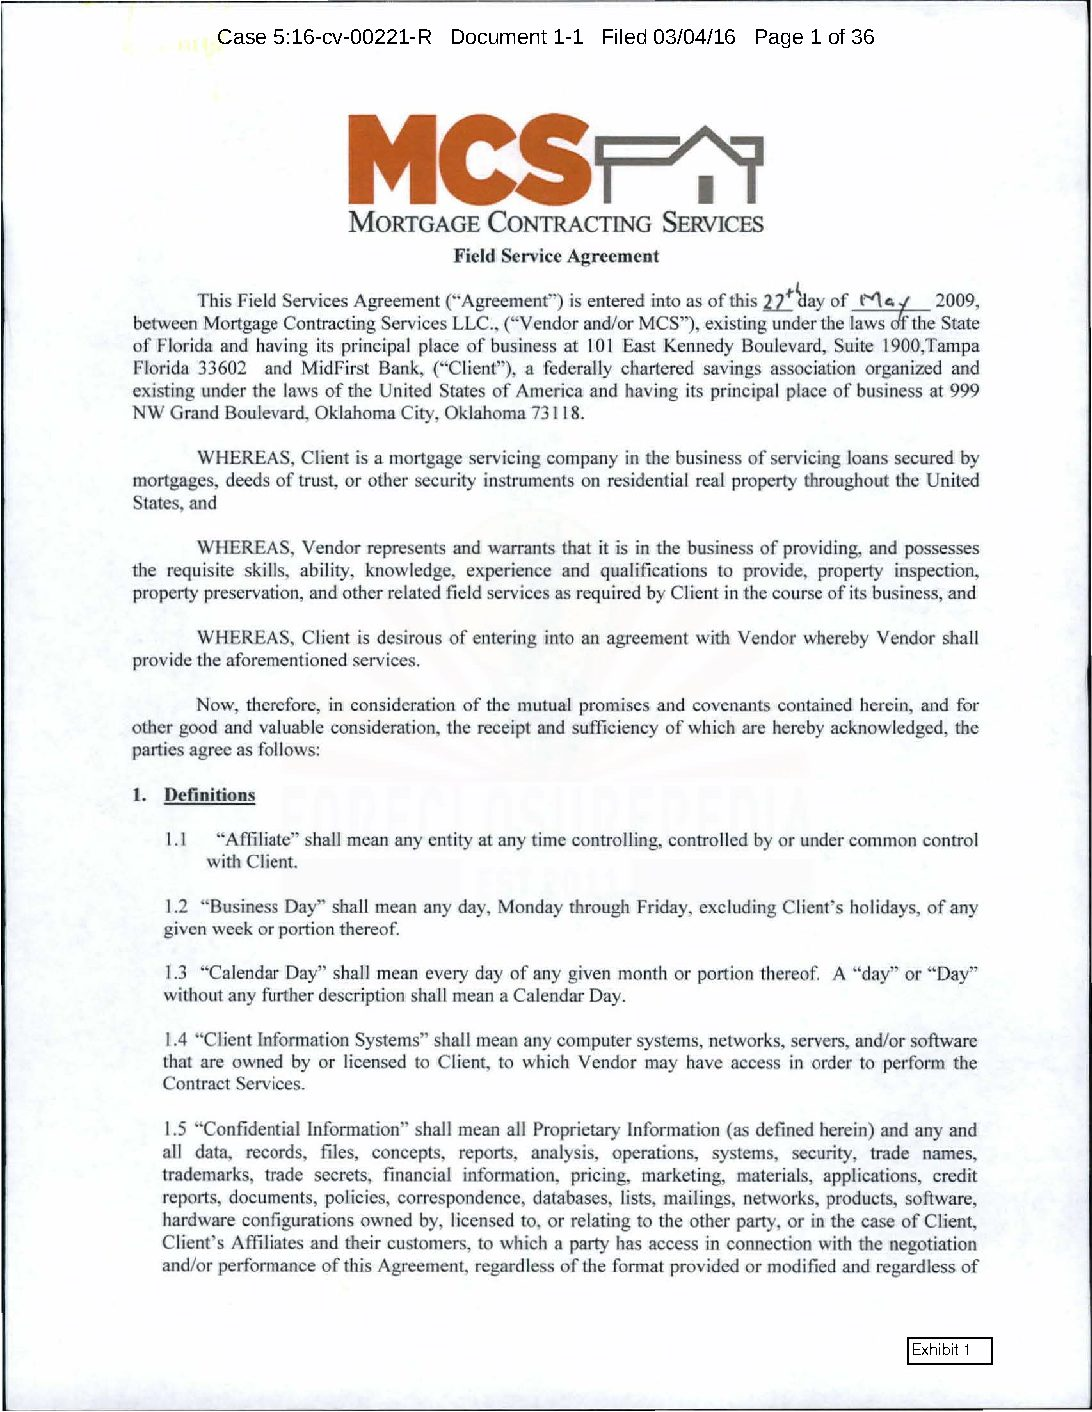 MidFirst v MCS Contract